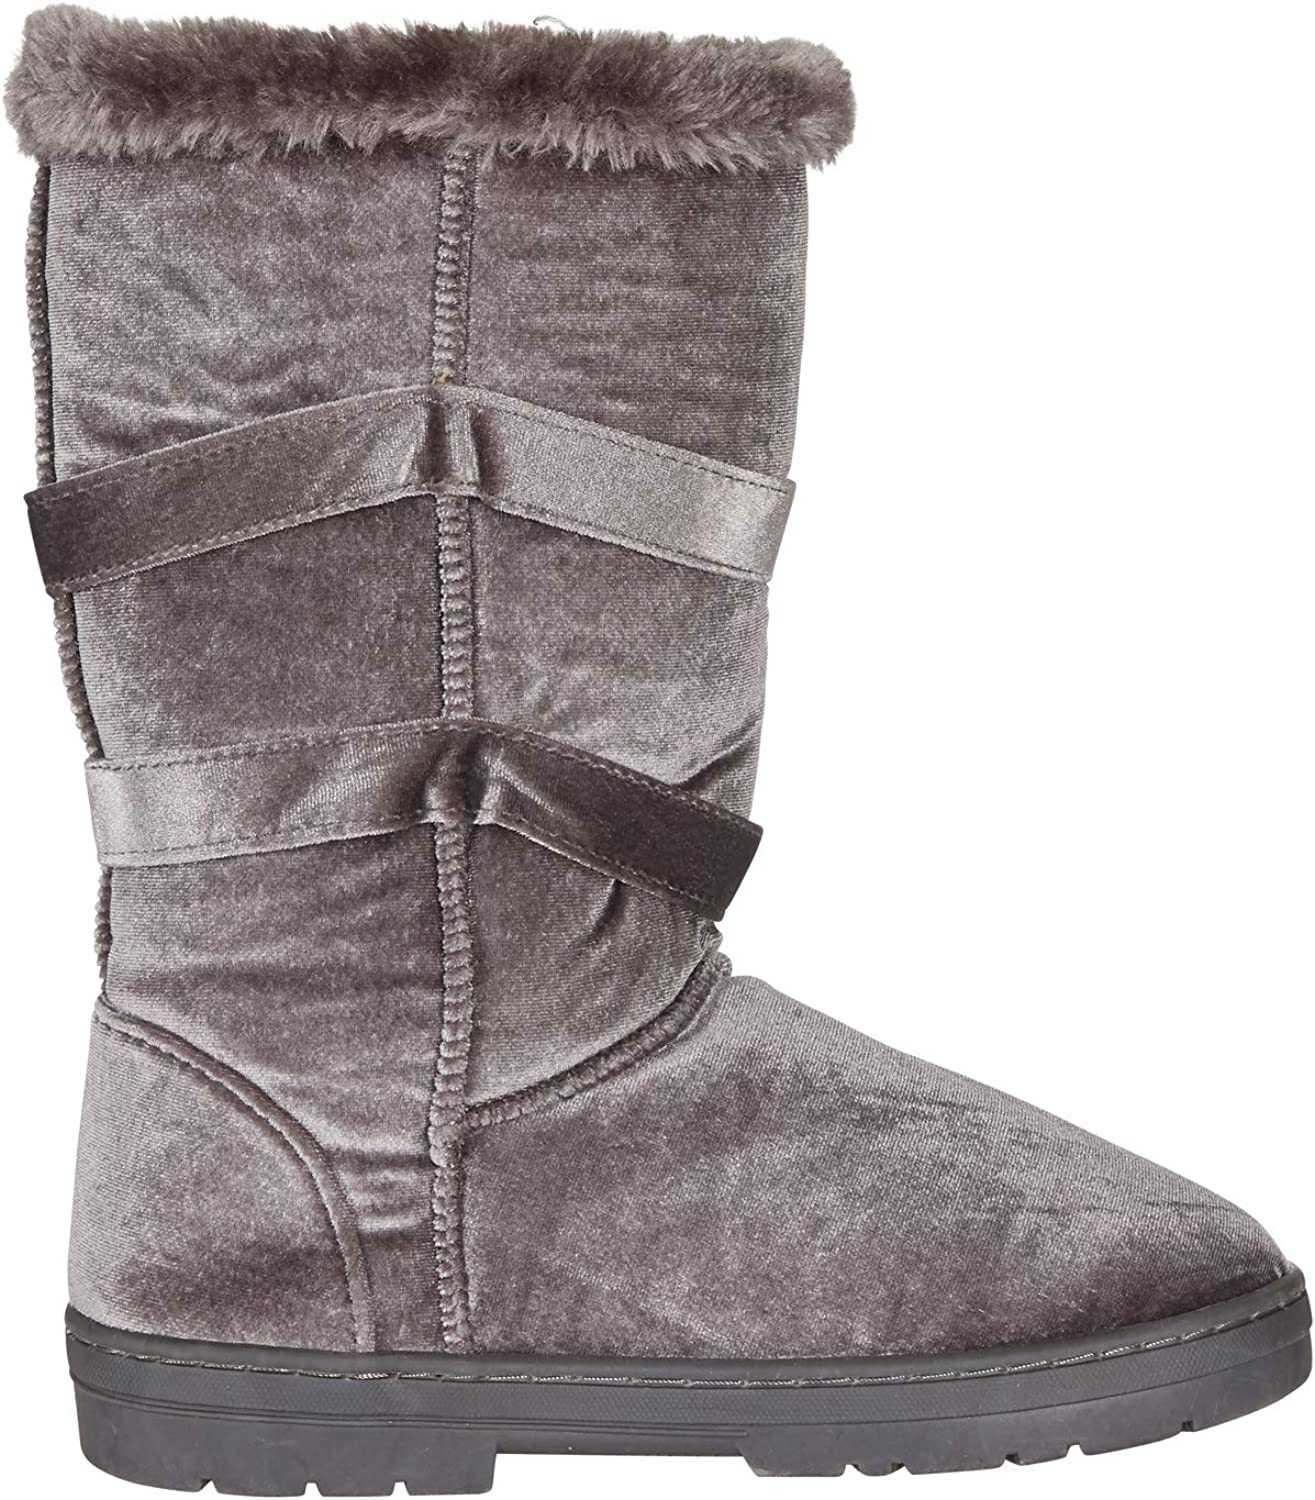 Chatties Women's 10  Velvet Winter Boots Fur Trimming Bow Accents Casual Mid-Calf